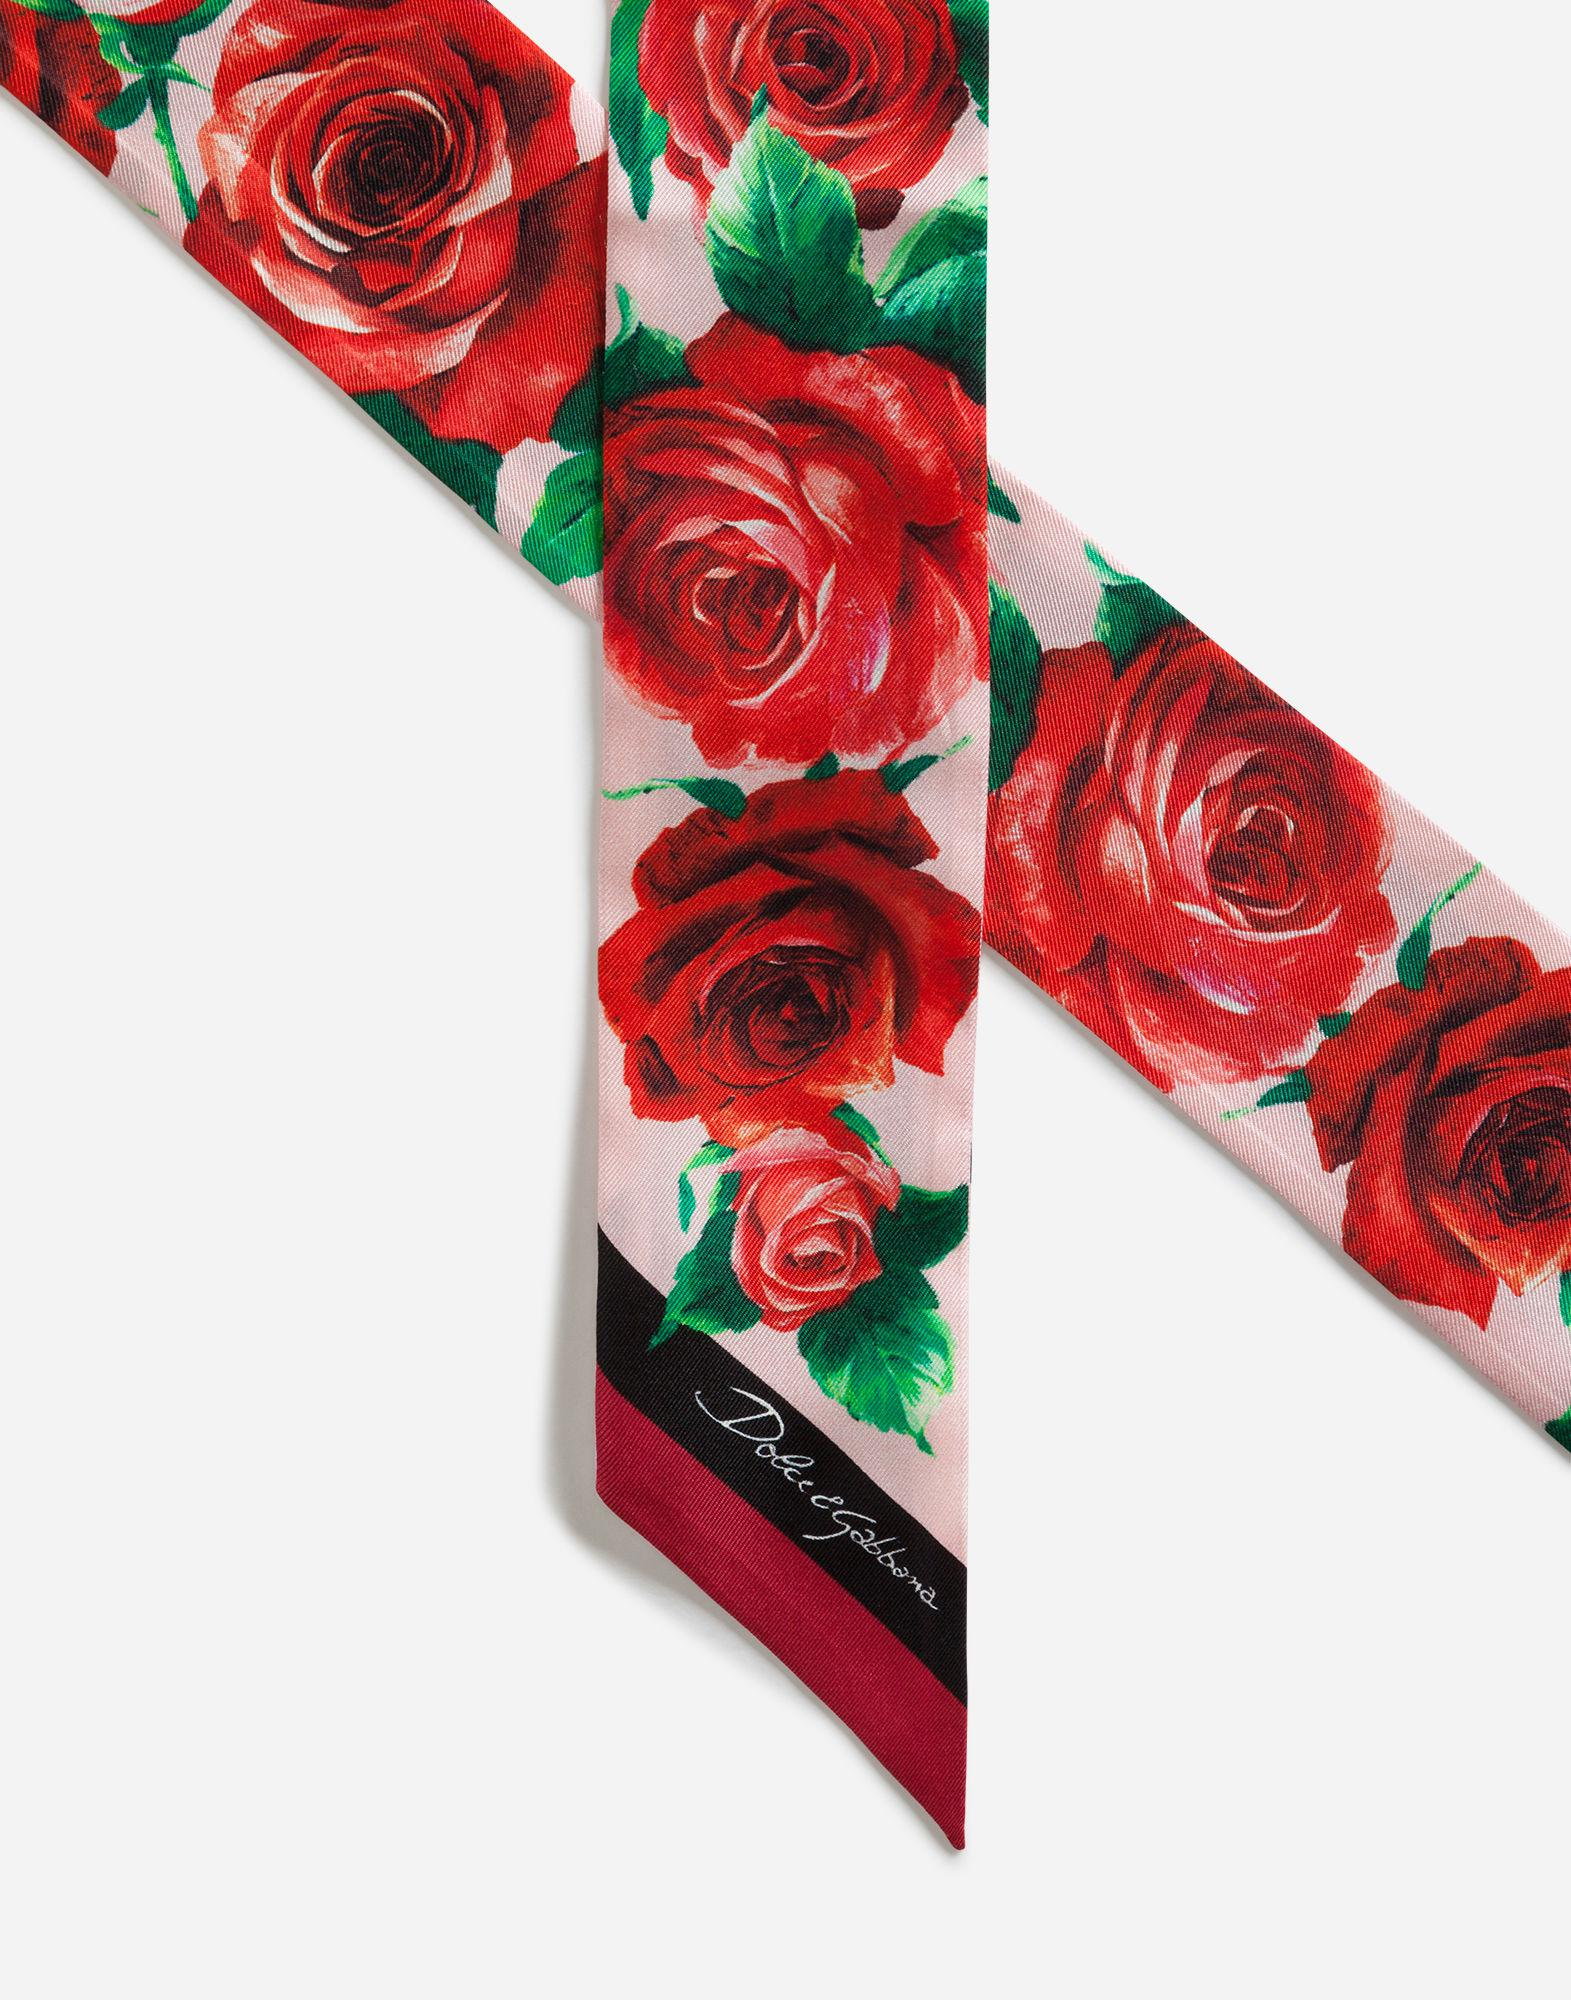 bda8aa832 Lyst - Dolce & Gabbana Printed Silk Headband in Red